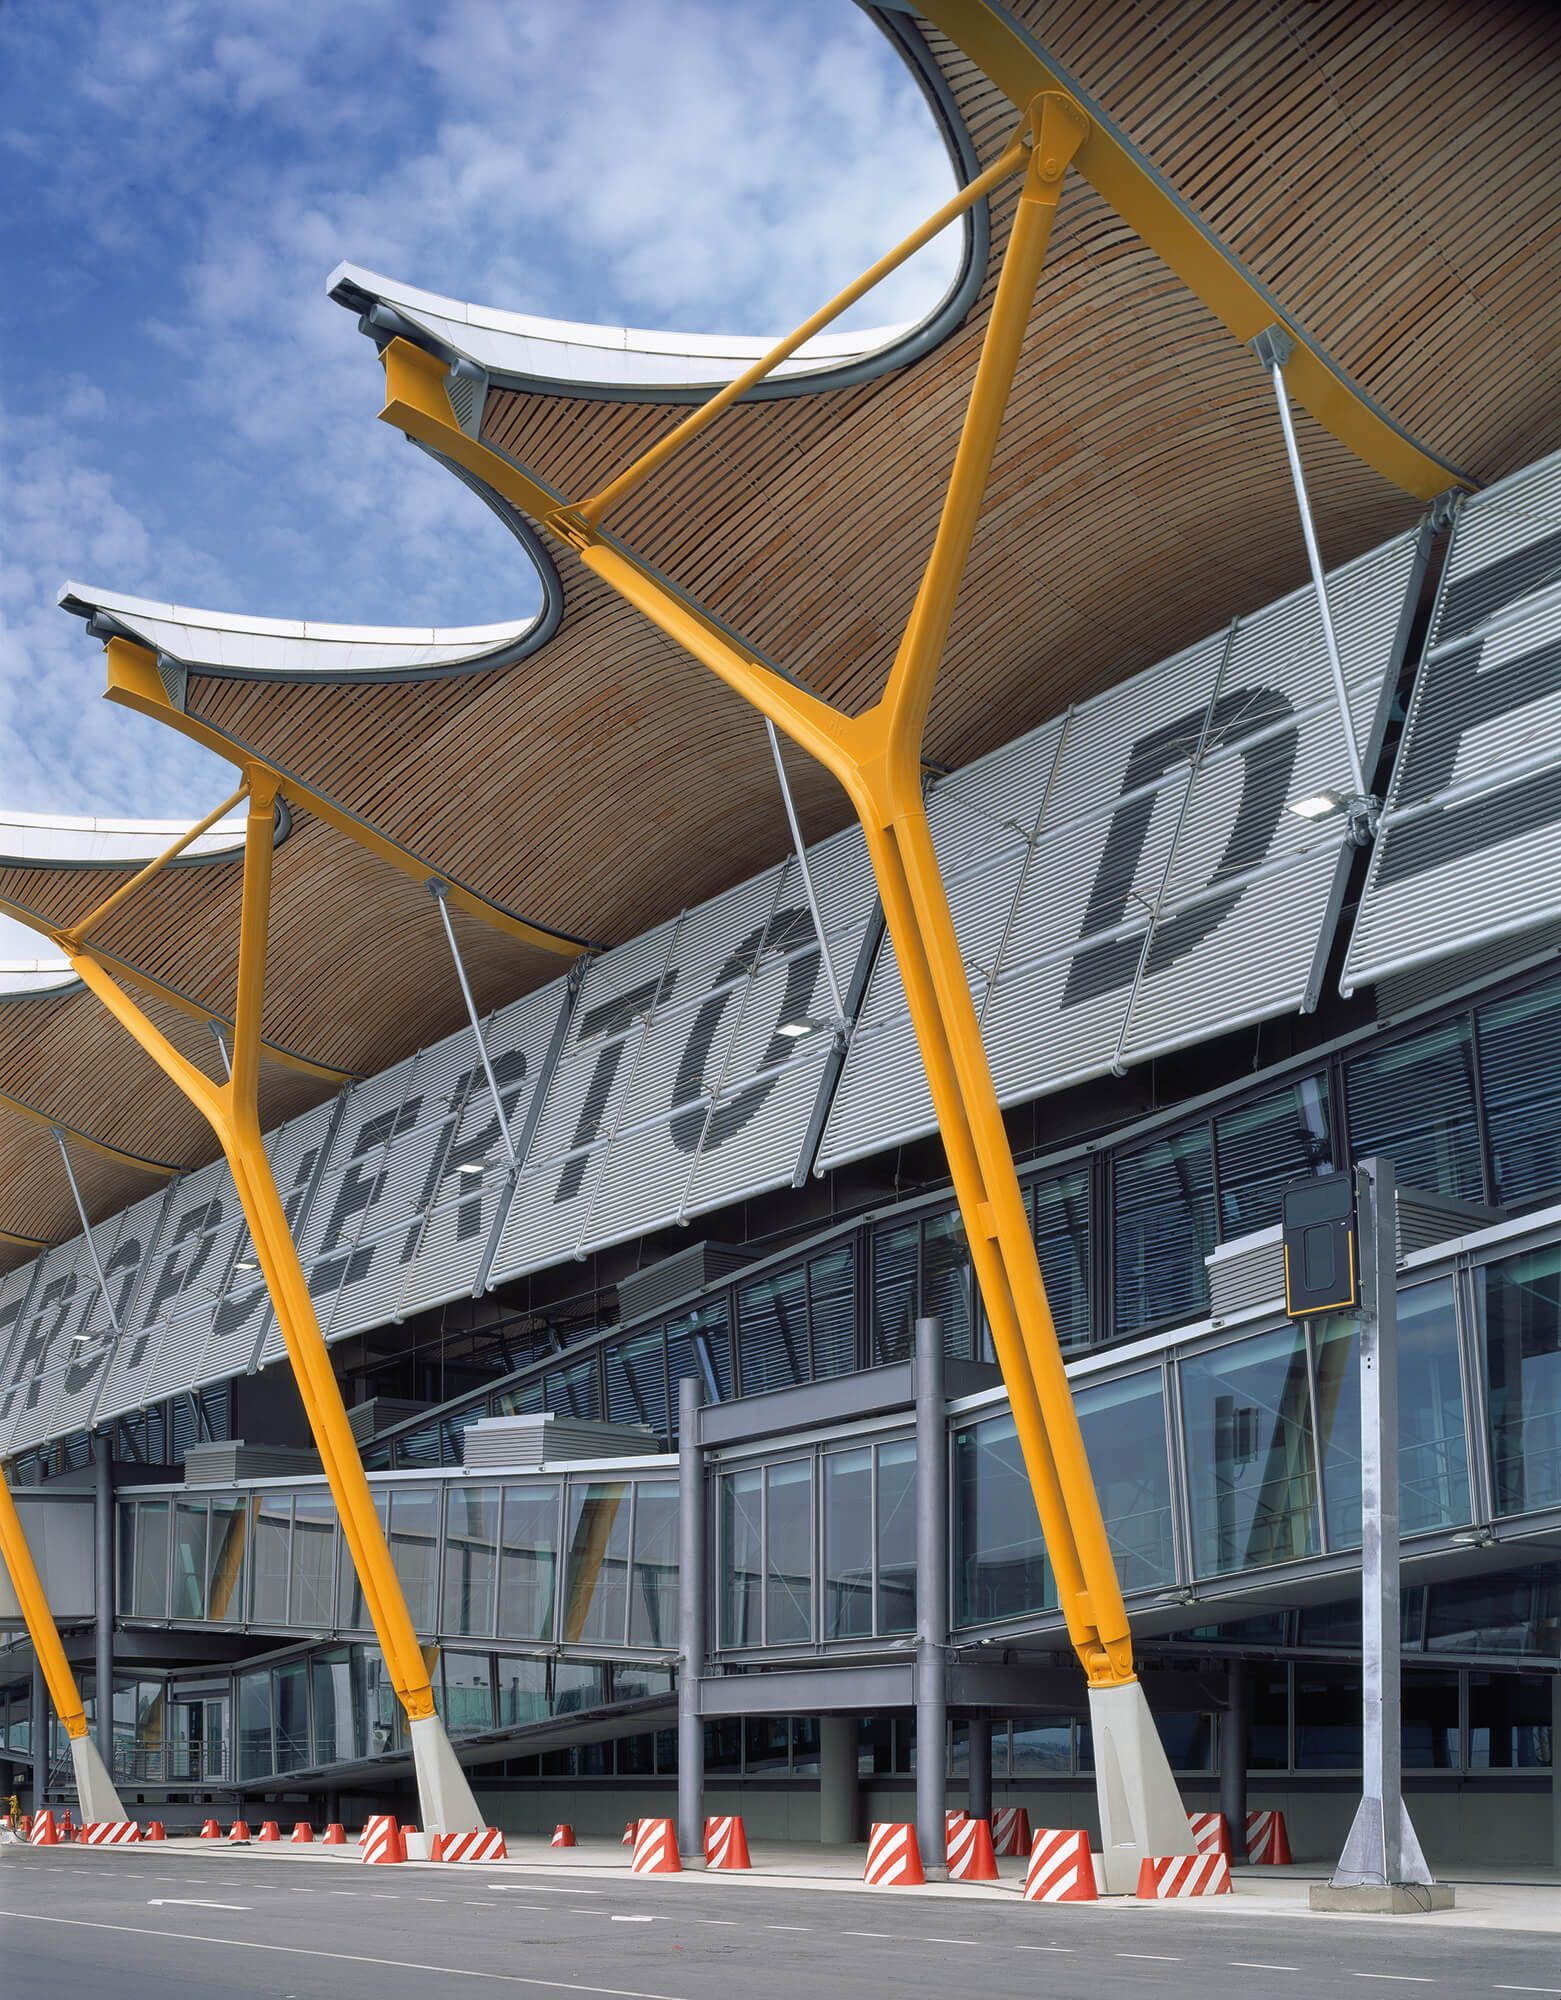 T4 Madrid Barajas Airport Projects Rogers Stirk Harbour Partners Airport Design Roof Architecture Concept Architecture